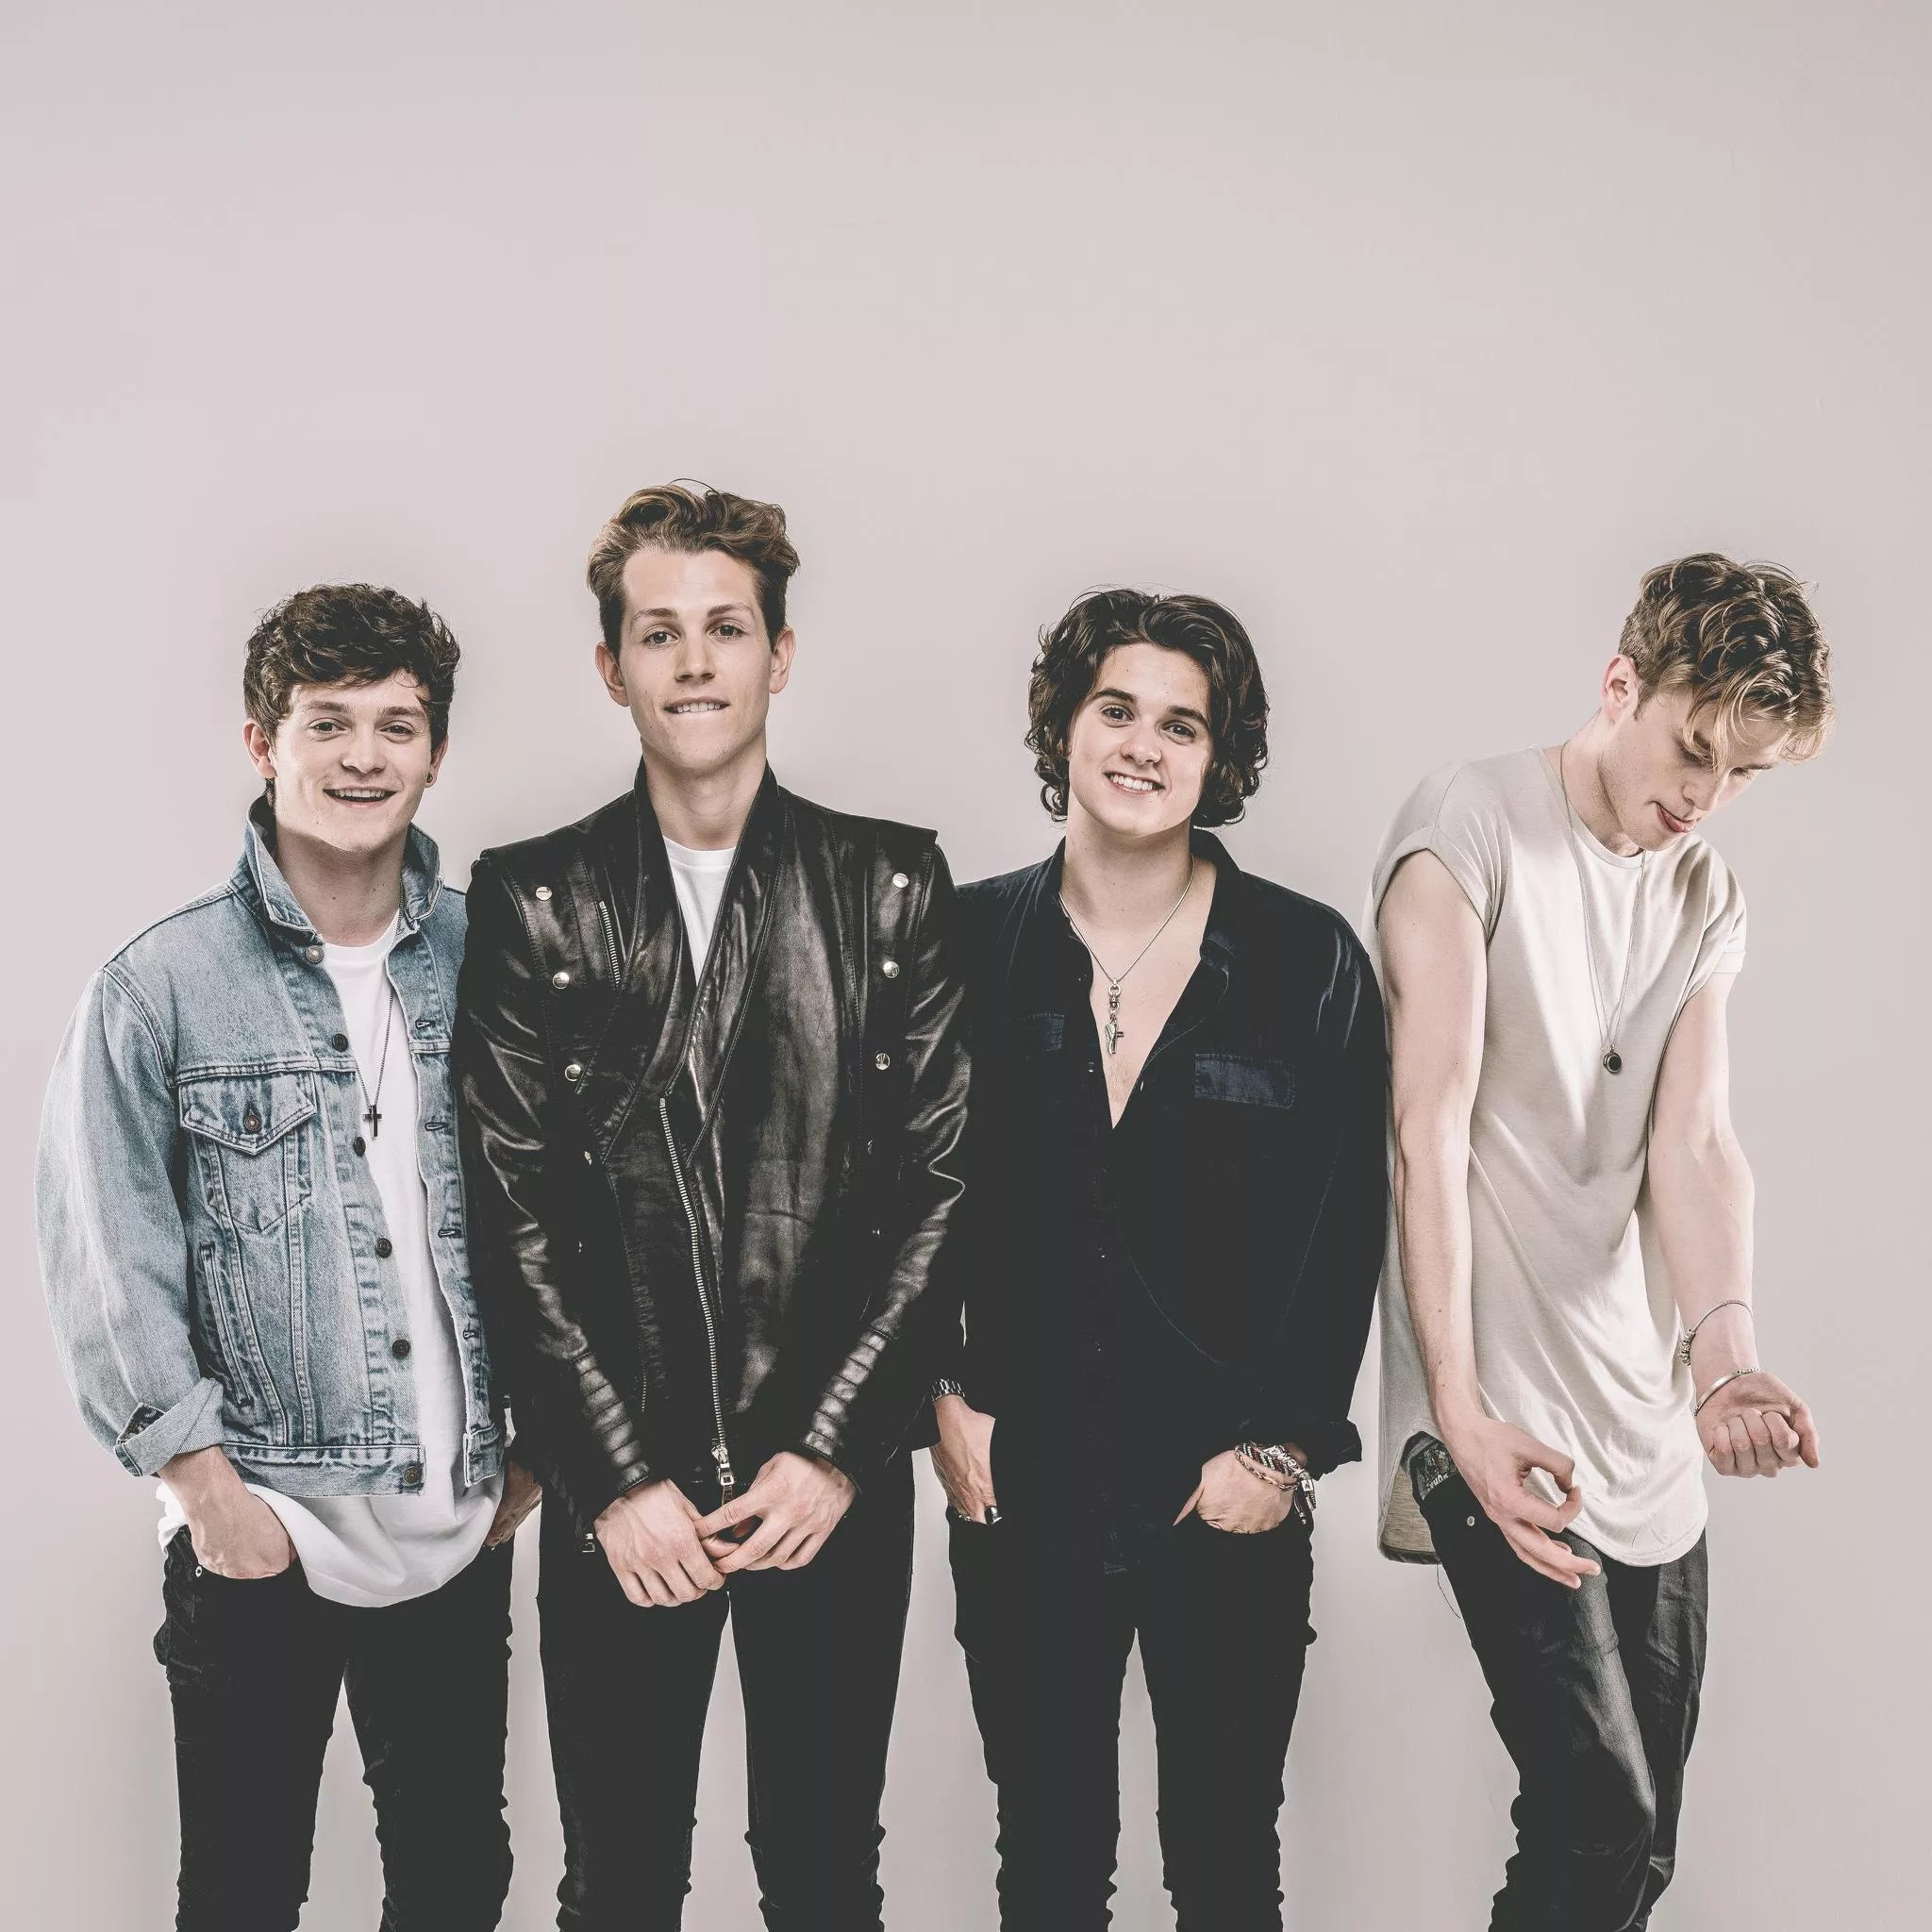 Cheater Girl Wallpaper The Vamps Letras Com 10 Canciones